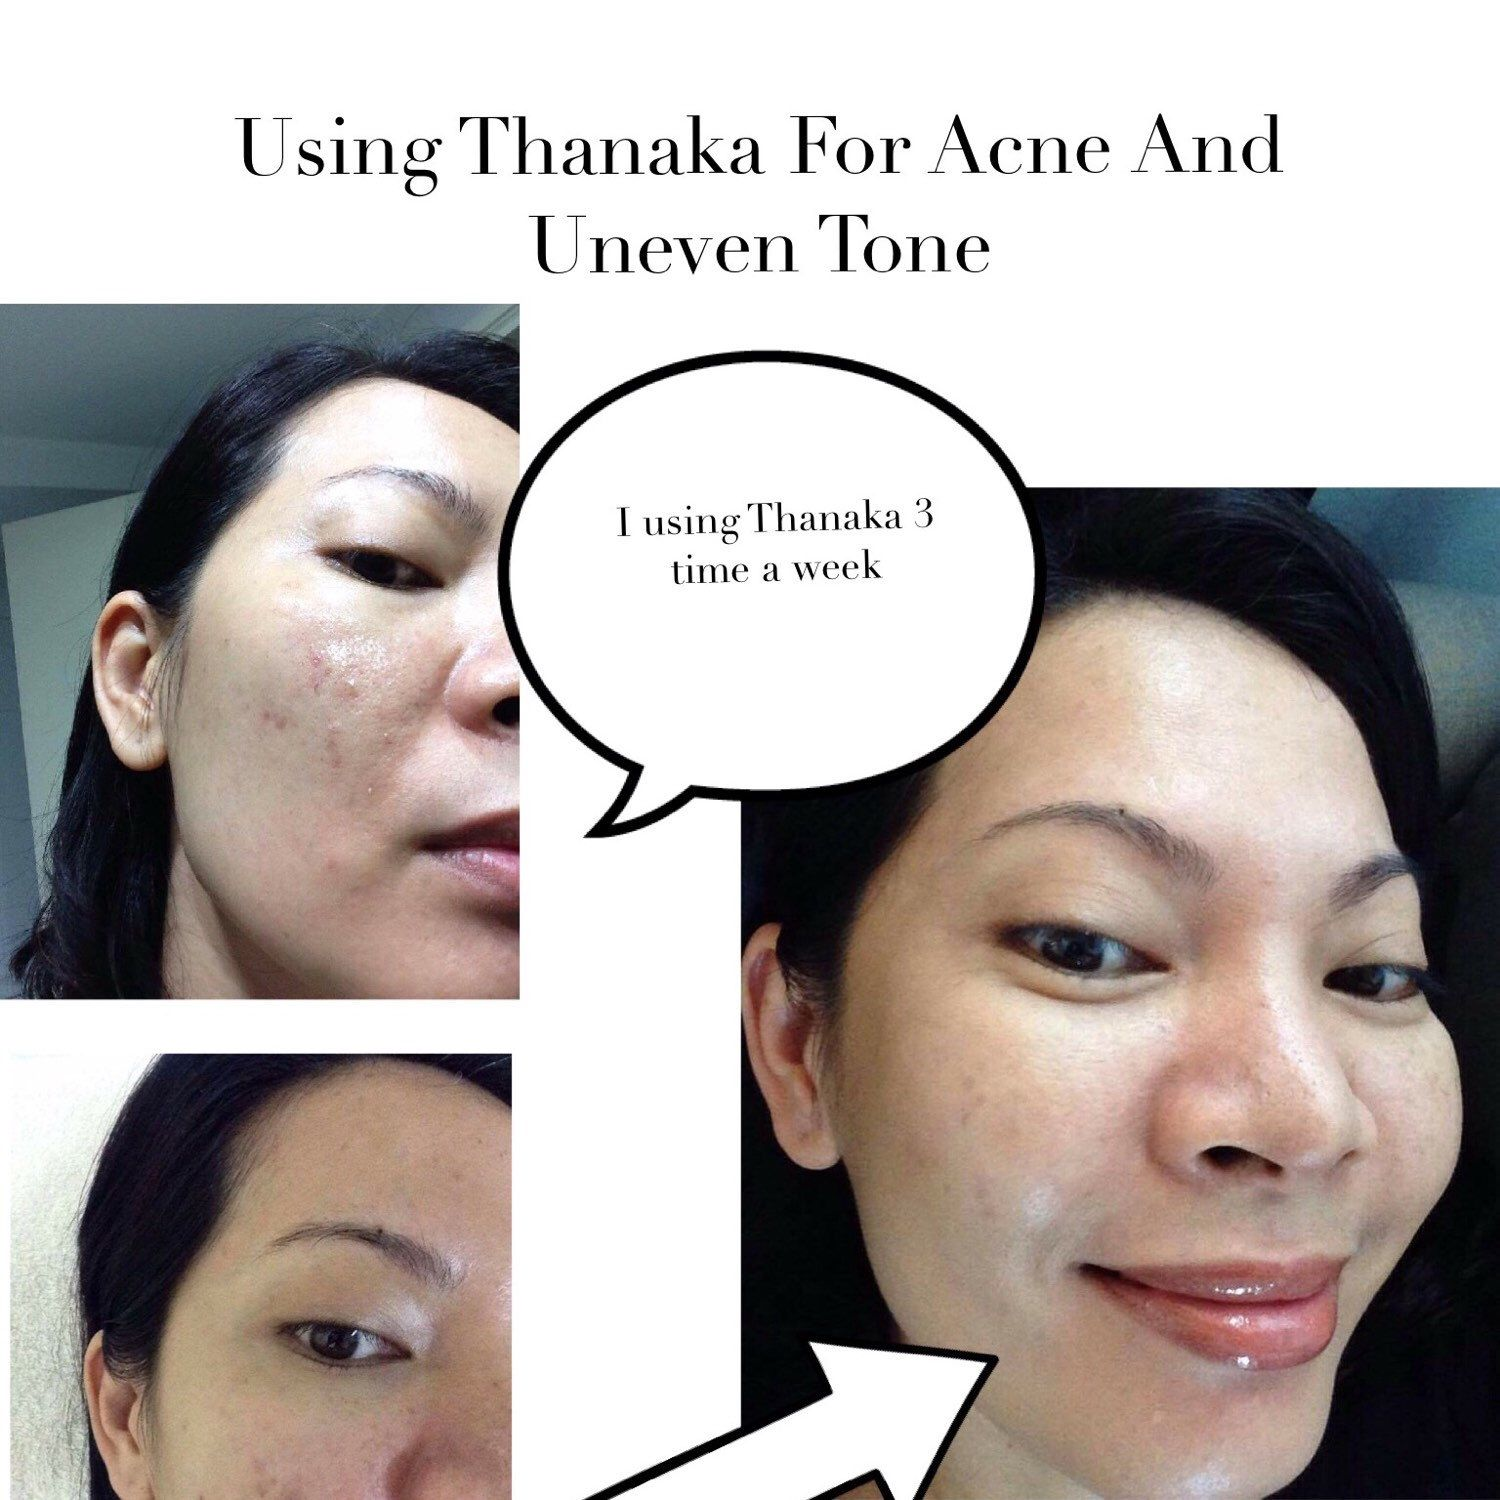 Using Thanaka For Acne And Uneven Tone | Thanaka powder in